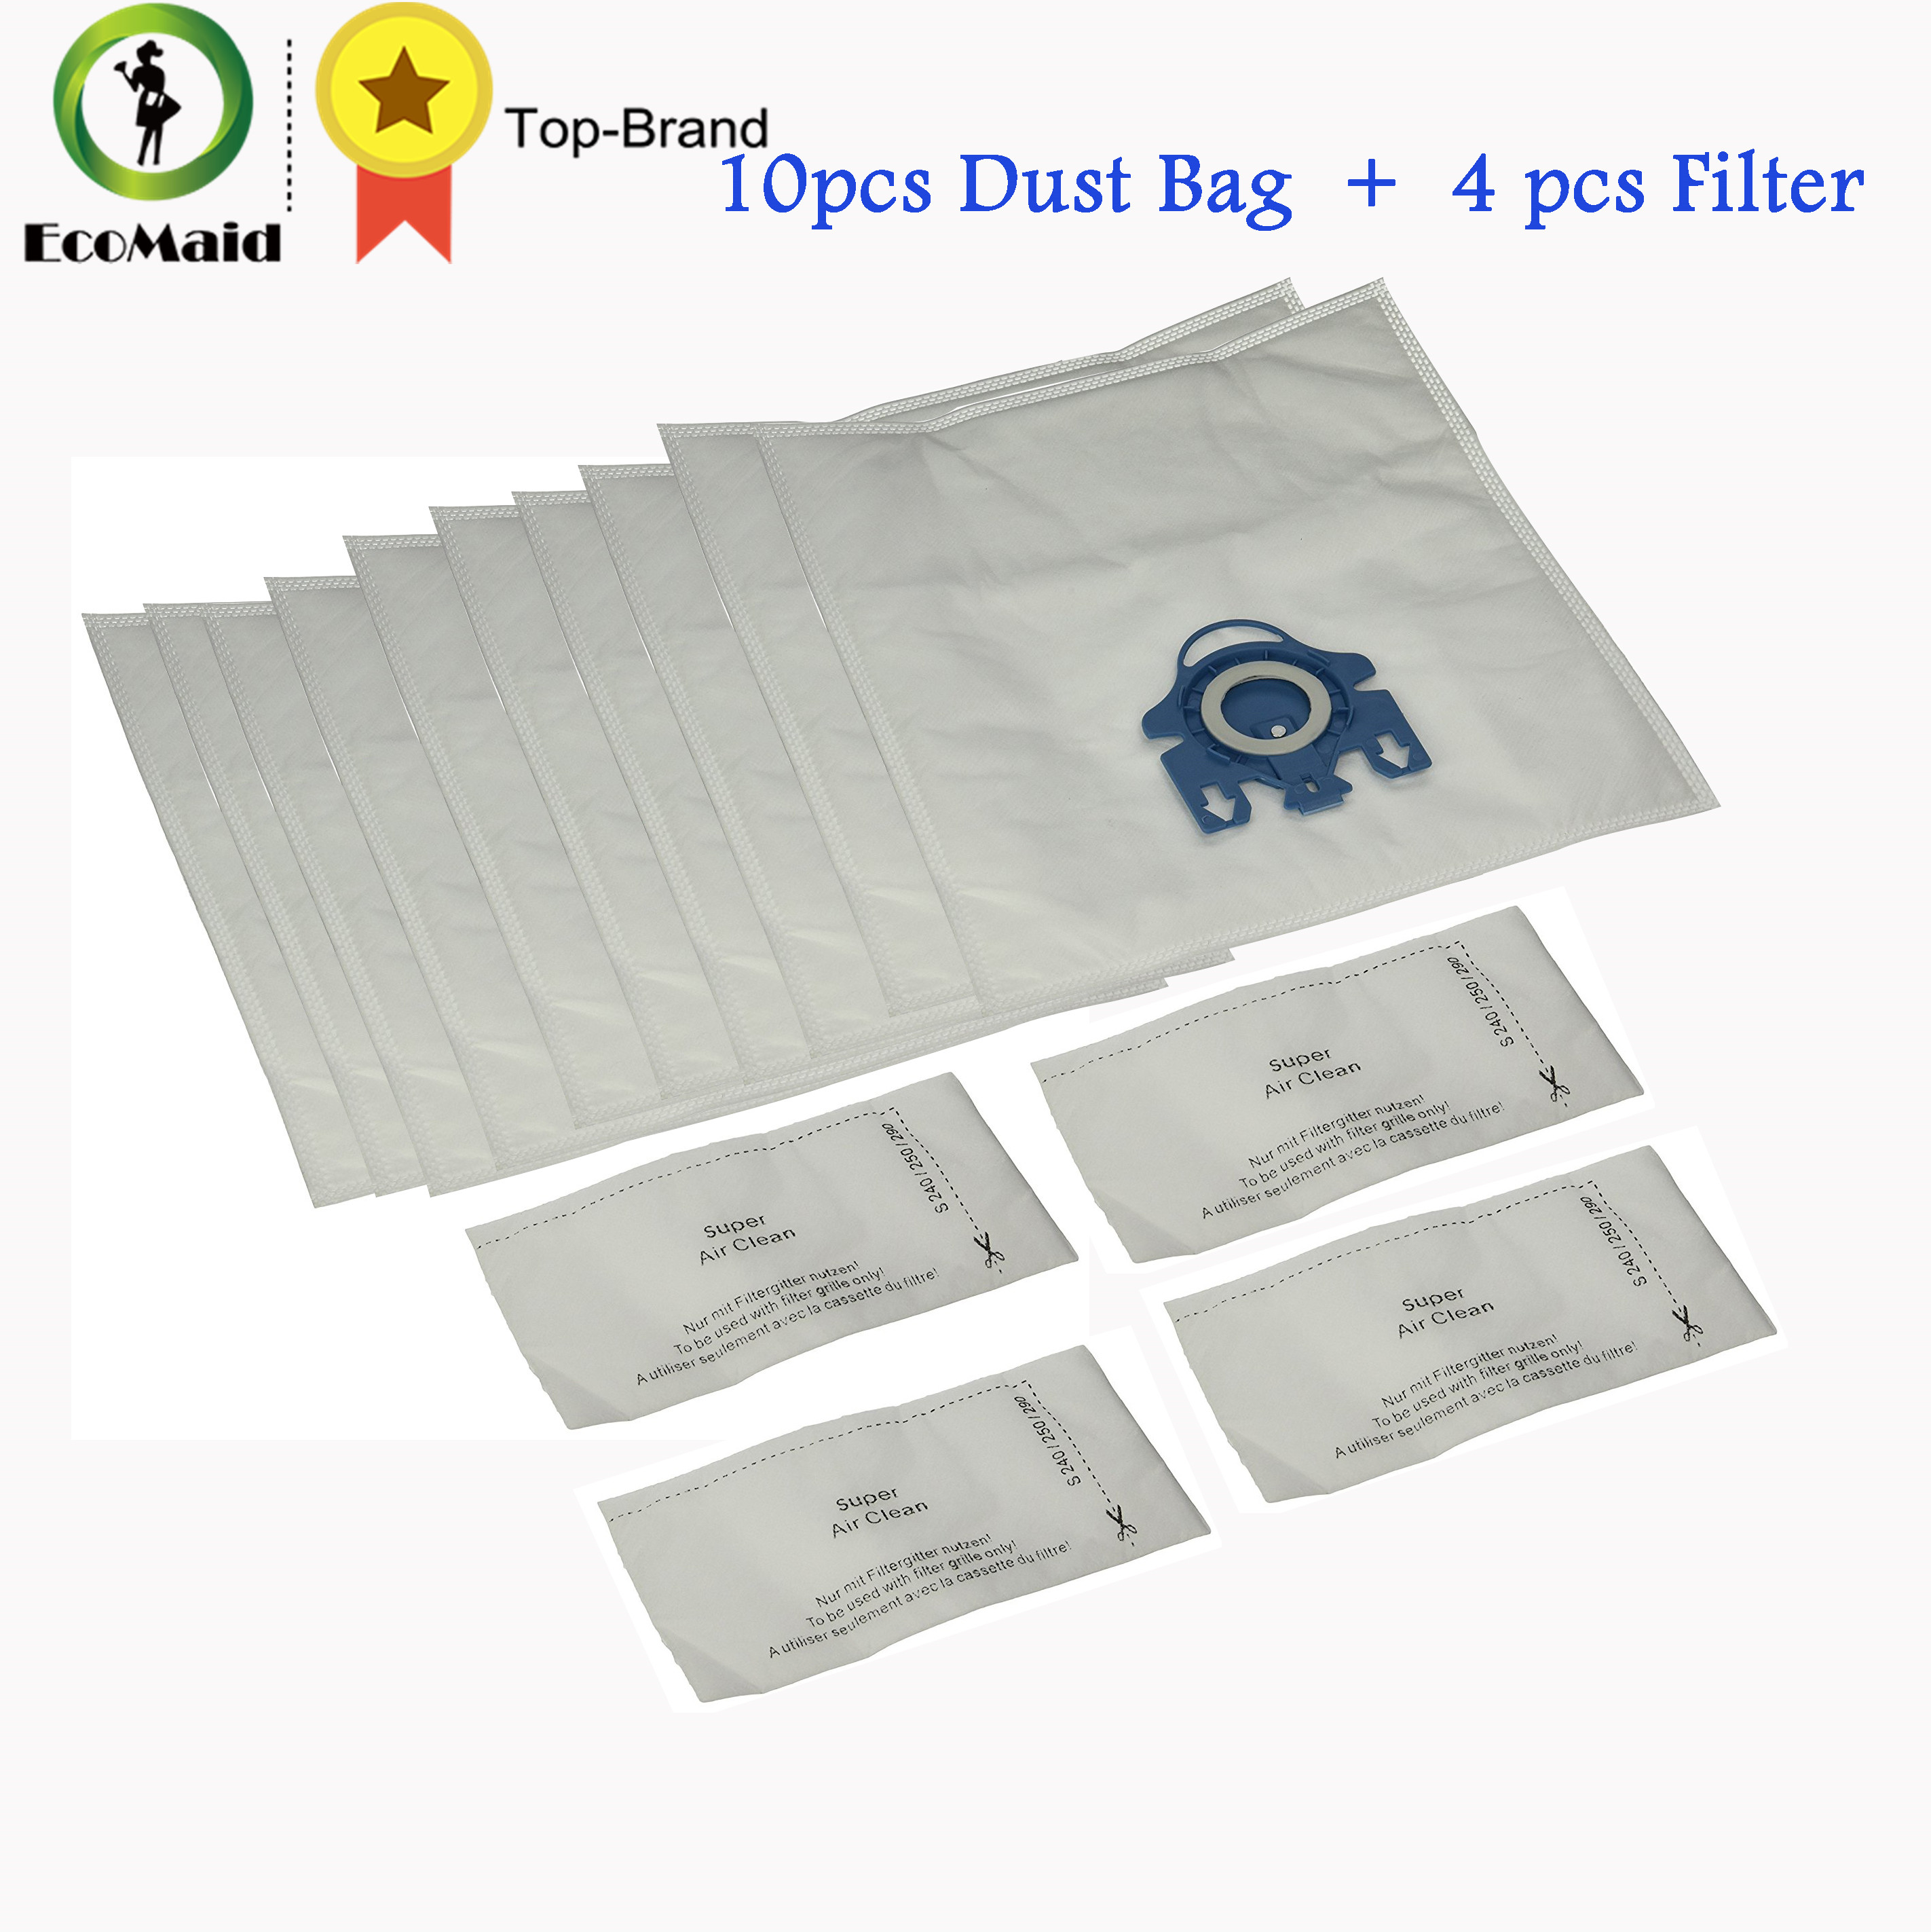 Dust Bag for Miele Vacuum Cleaner GN Type Vacuum Rubbish Bag Hoover Cat Dog Dust Bag Filter 10pcs + 4 Filters акустическая система pioneer dm 40